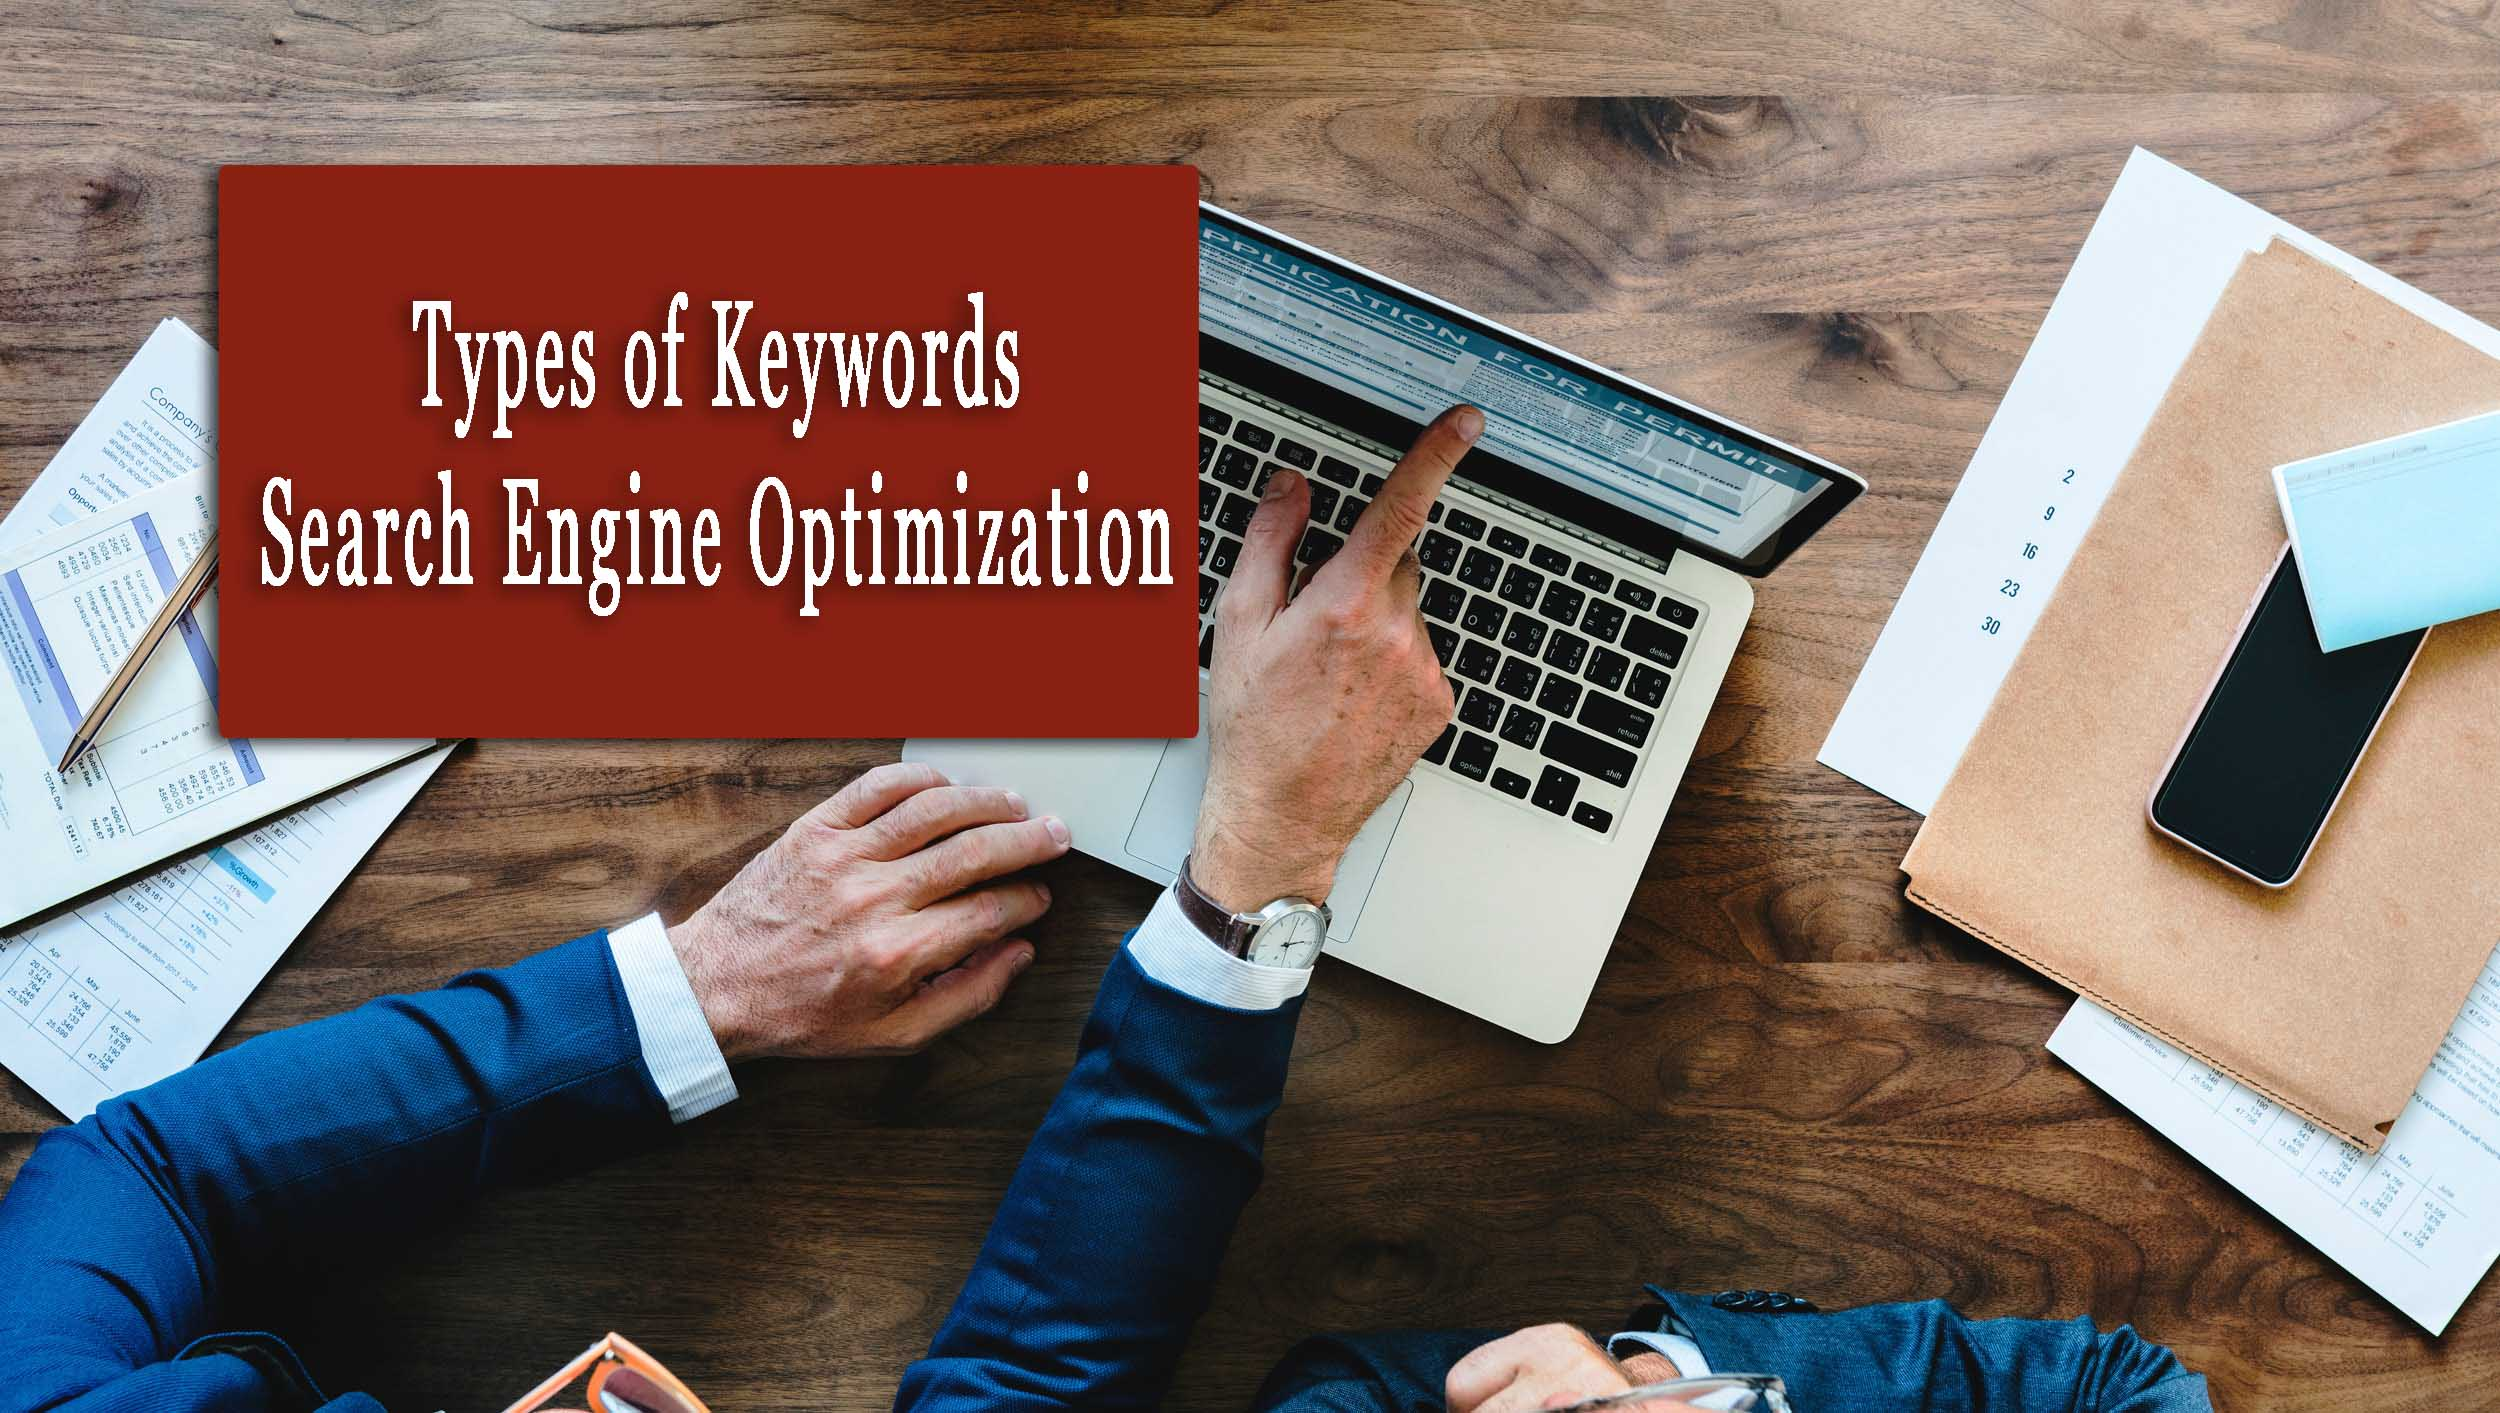 Top 4 Types of Keywords in Search Engine Optimization in 2020